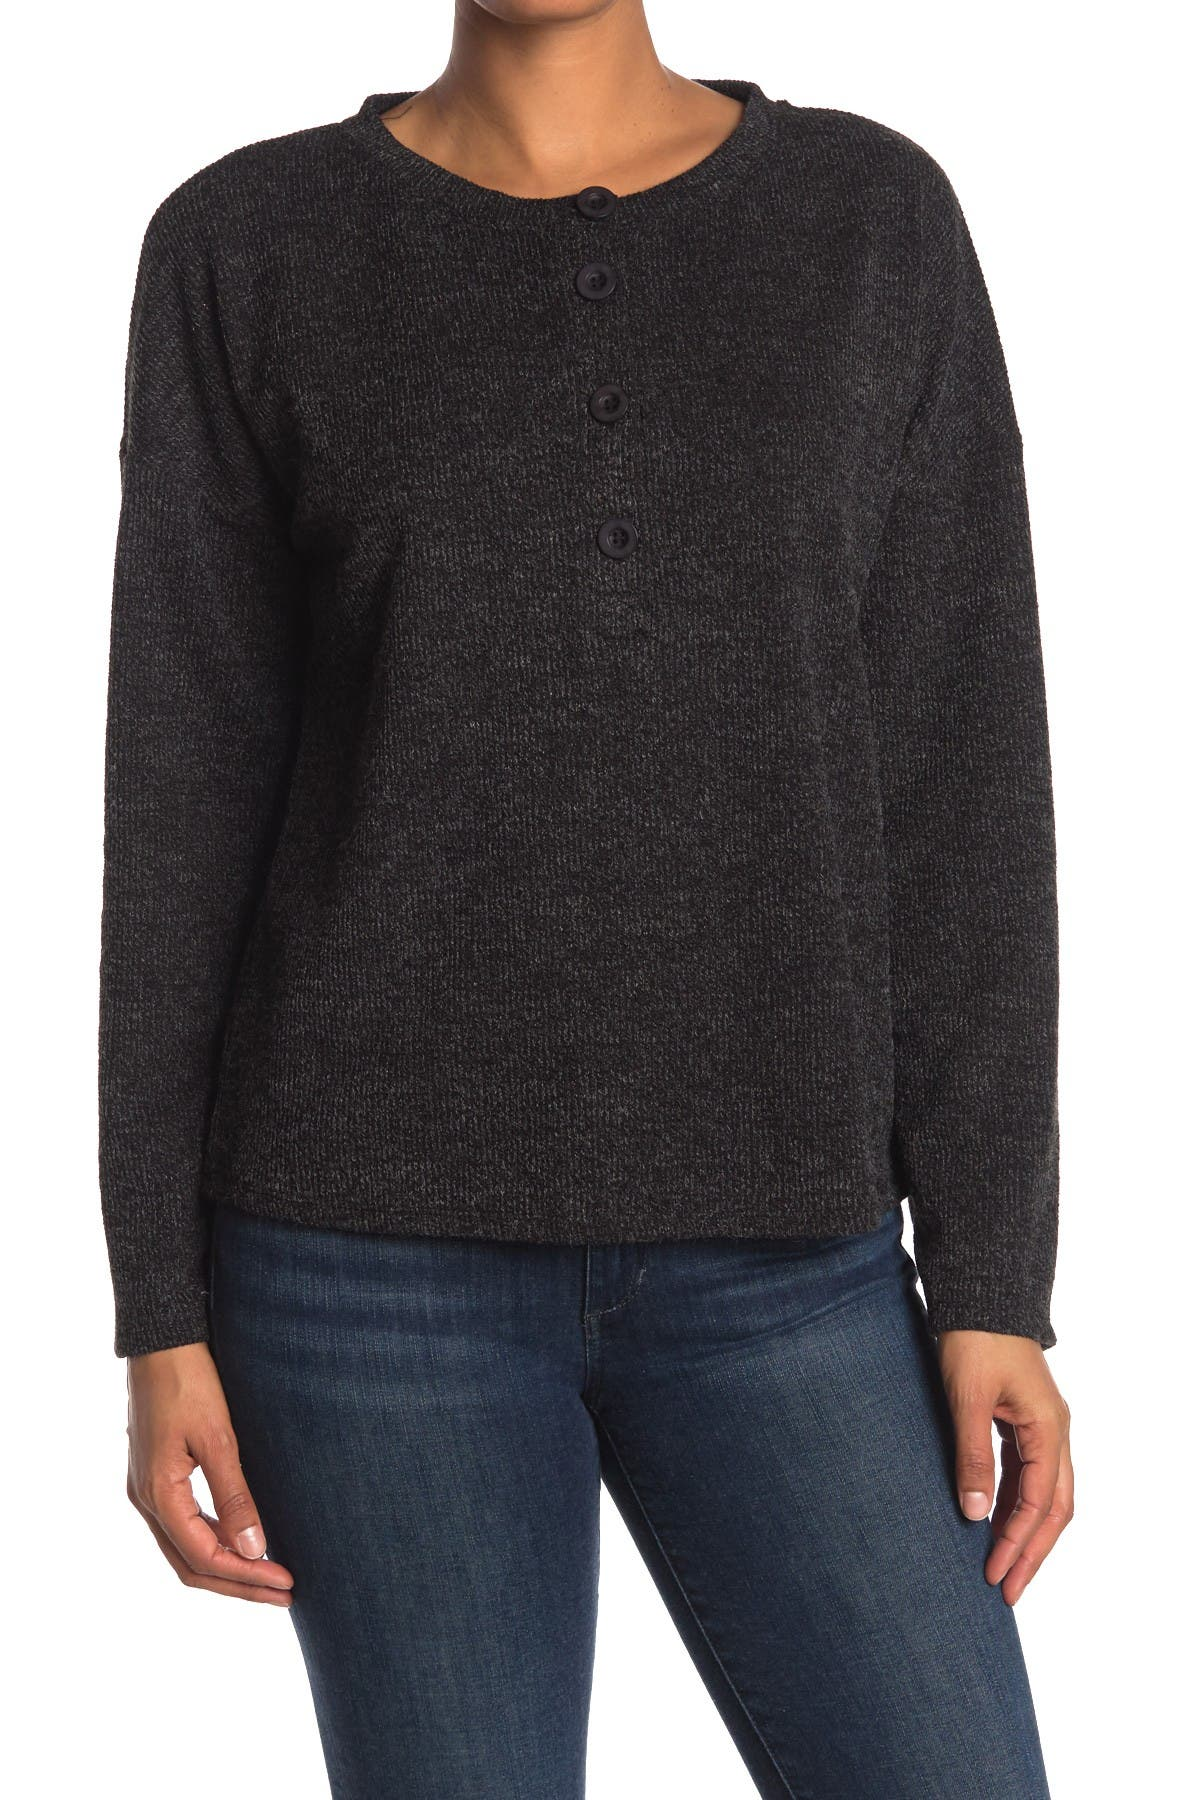 Image of Gibsonlook Ribbed Knit Dolman Sleeve Henley